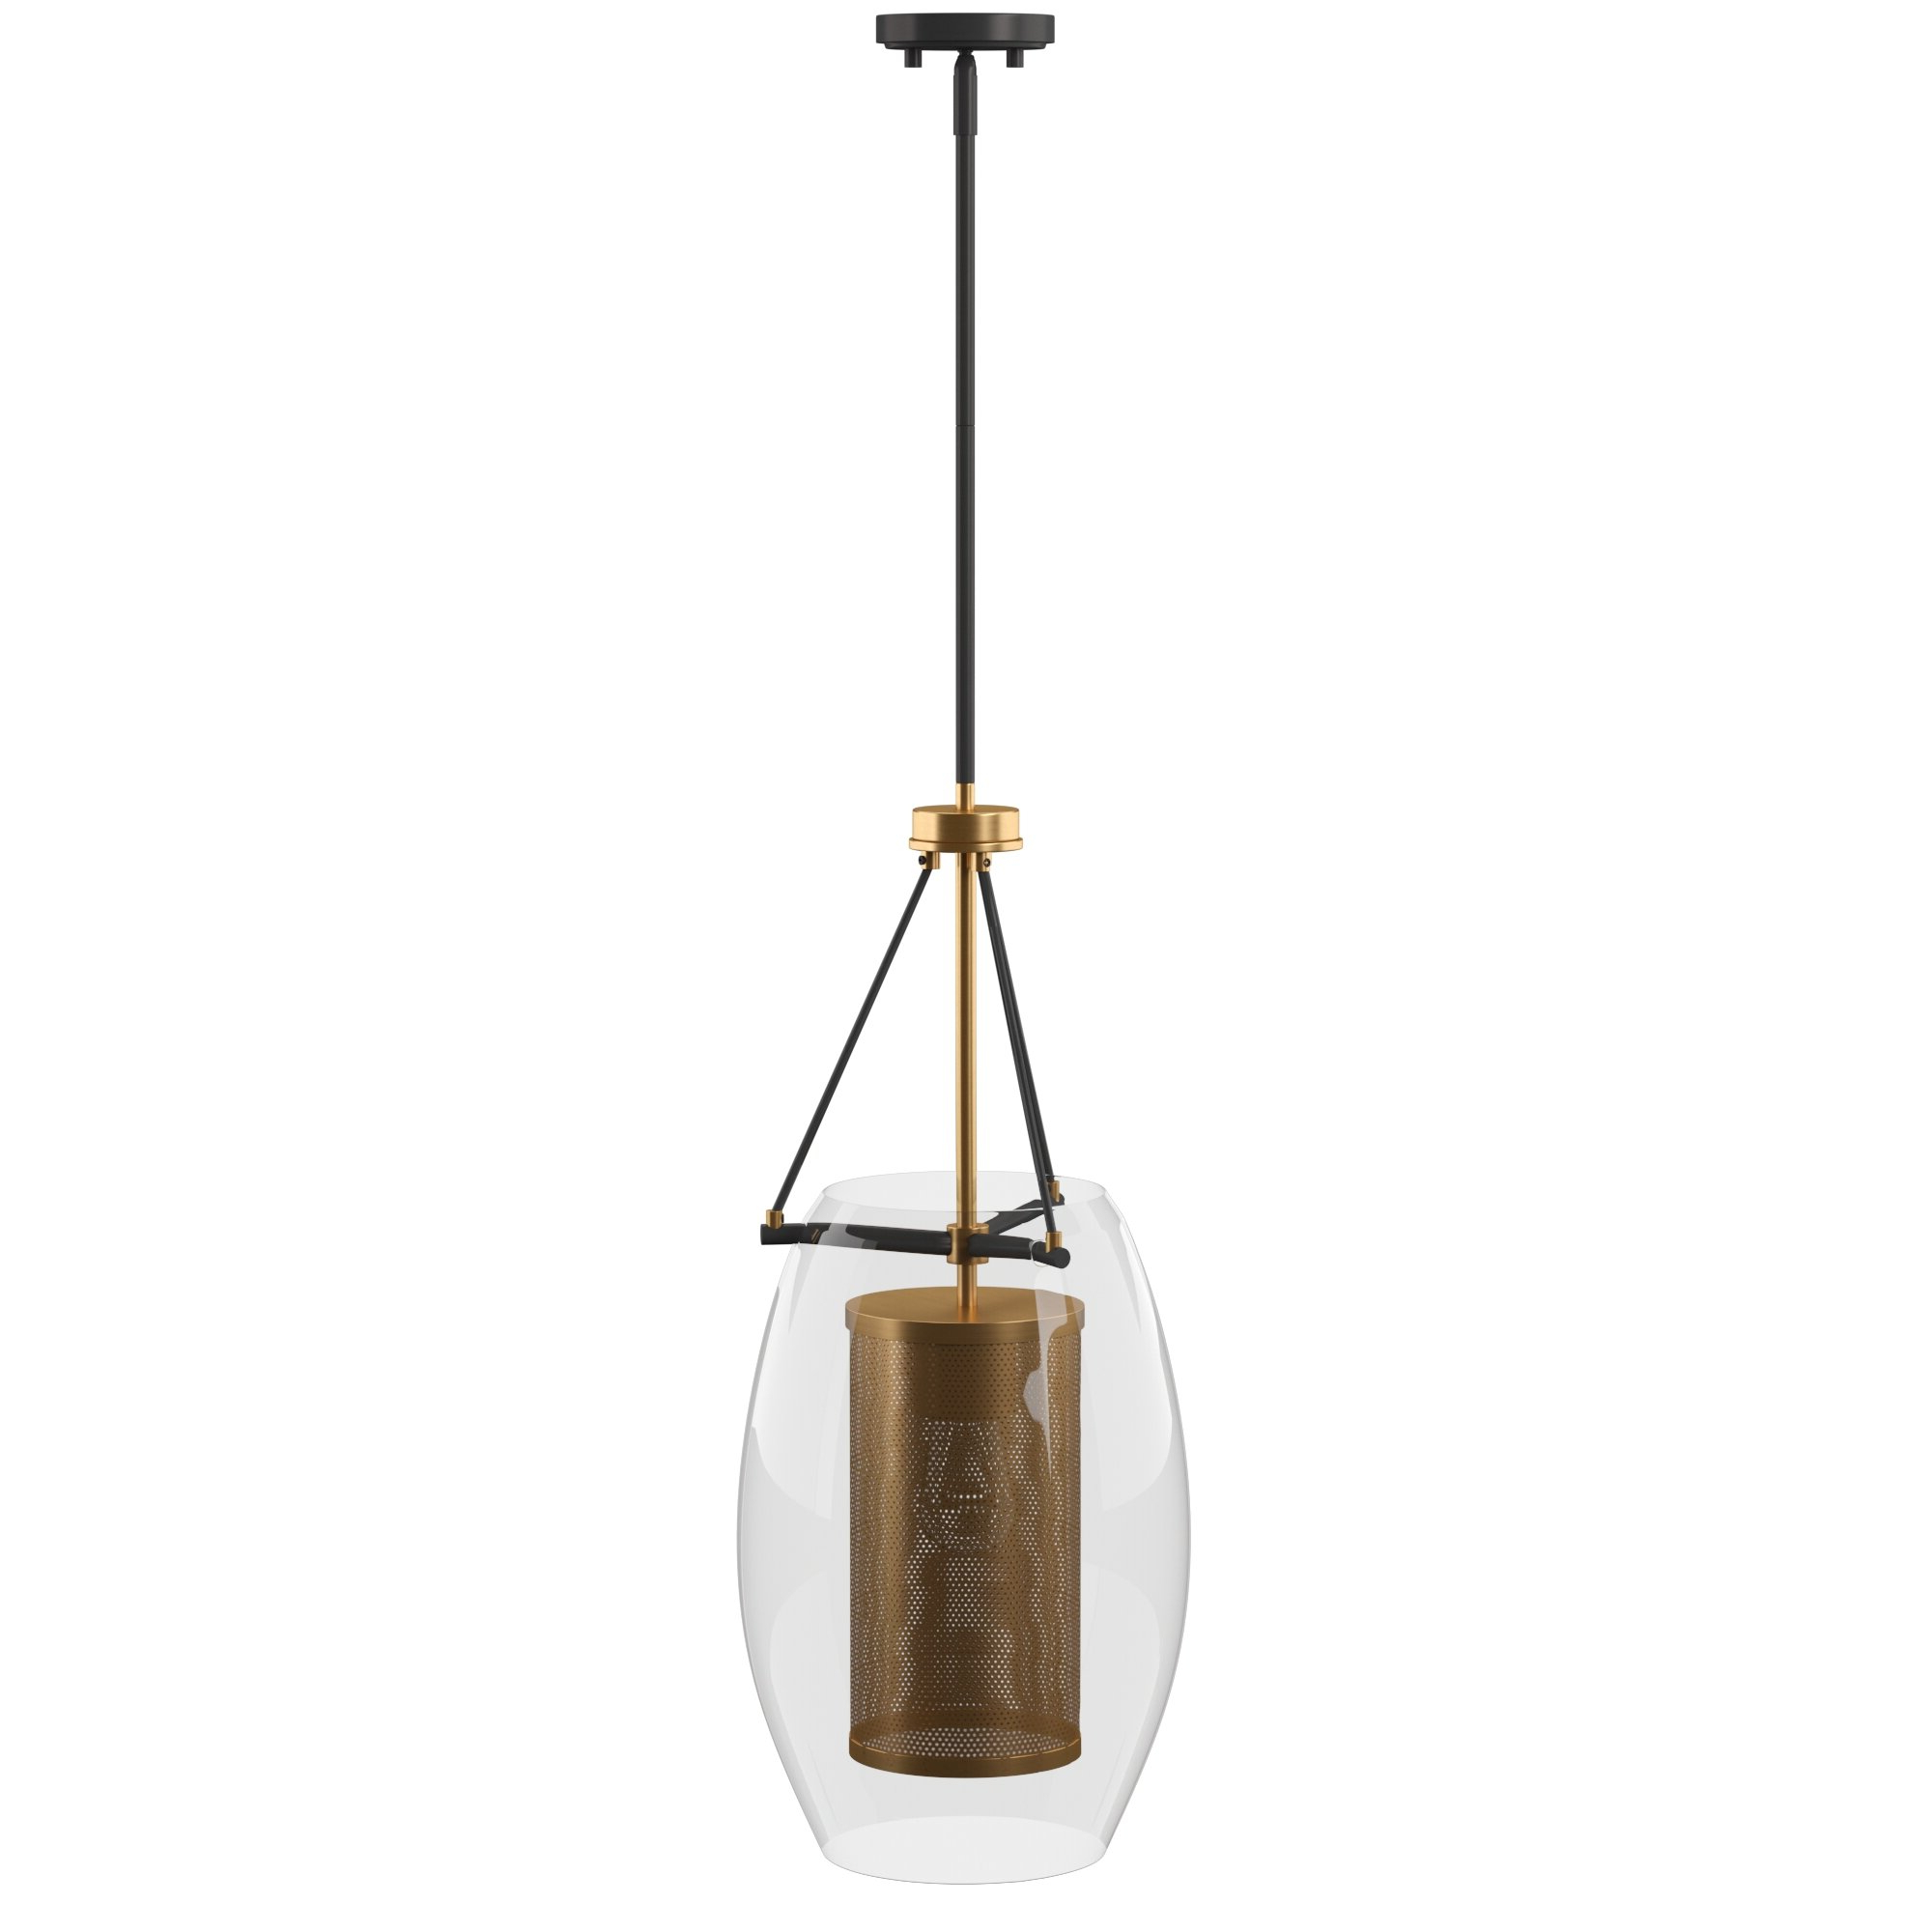 Depp 1 Light Single Cylinder Pendant Pertaining To Recent Houon 1 Light Cone Bell Pendants (Gallery 15 of 20)